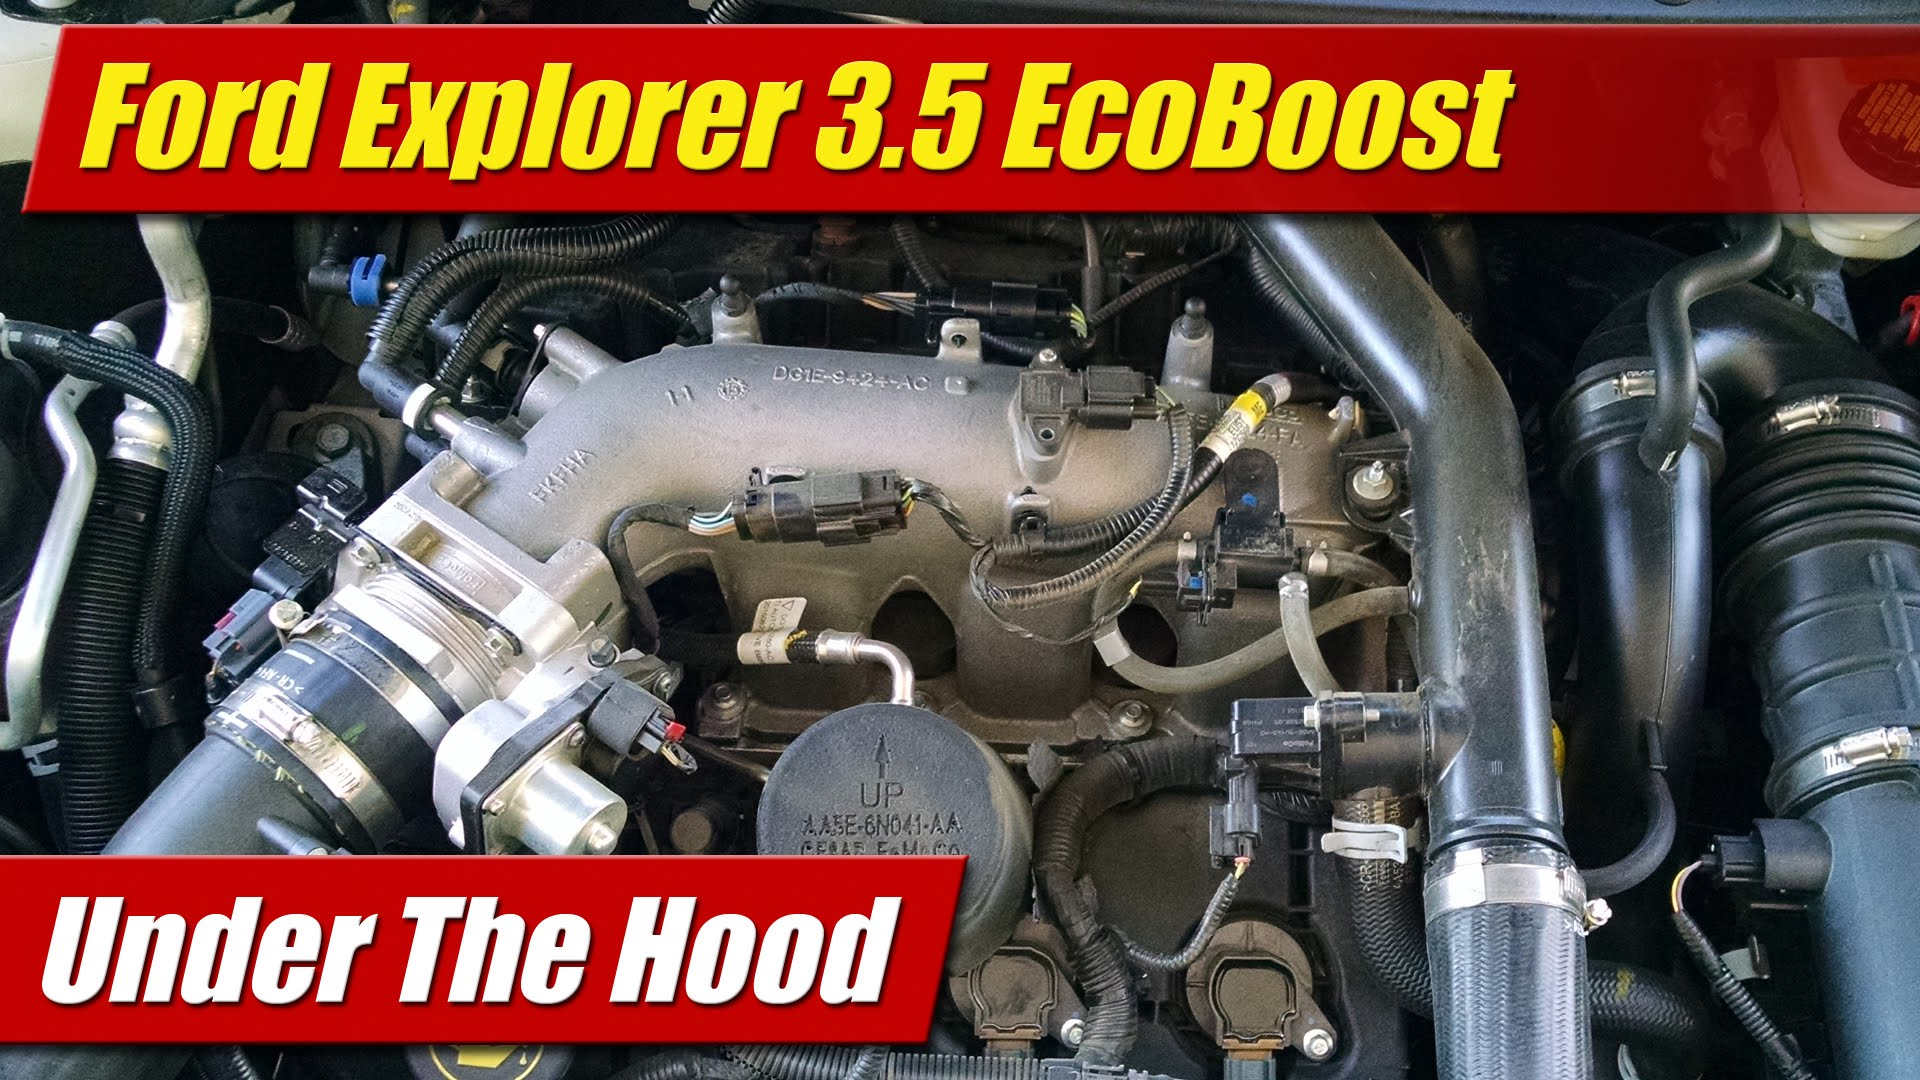 hight resolution of under the hood ford explorer 3 5 ecoboost